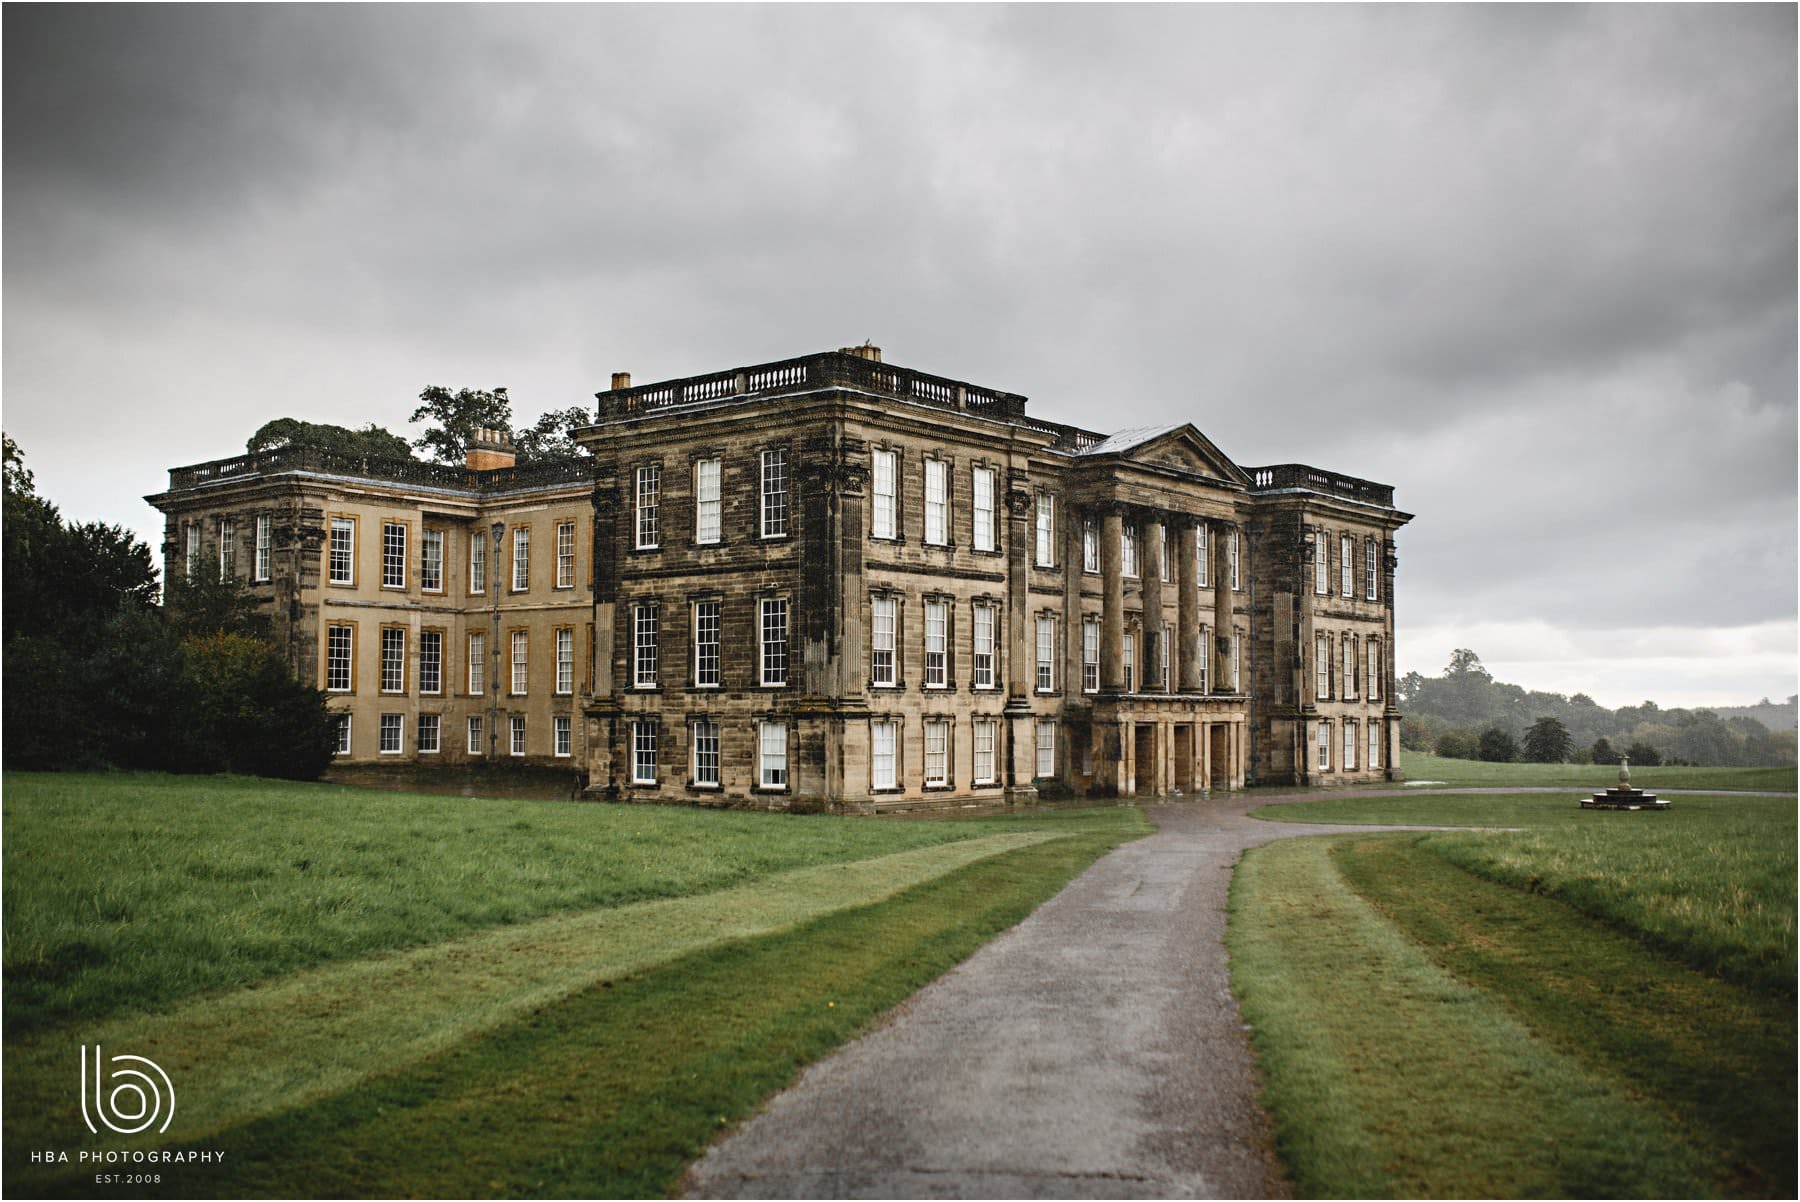 The house of Calke ABbey